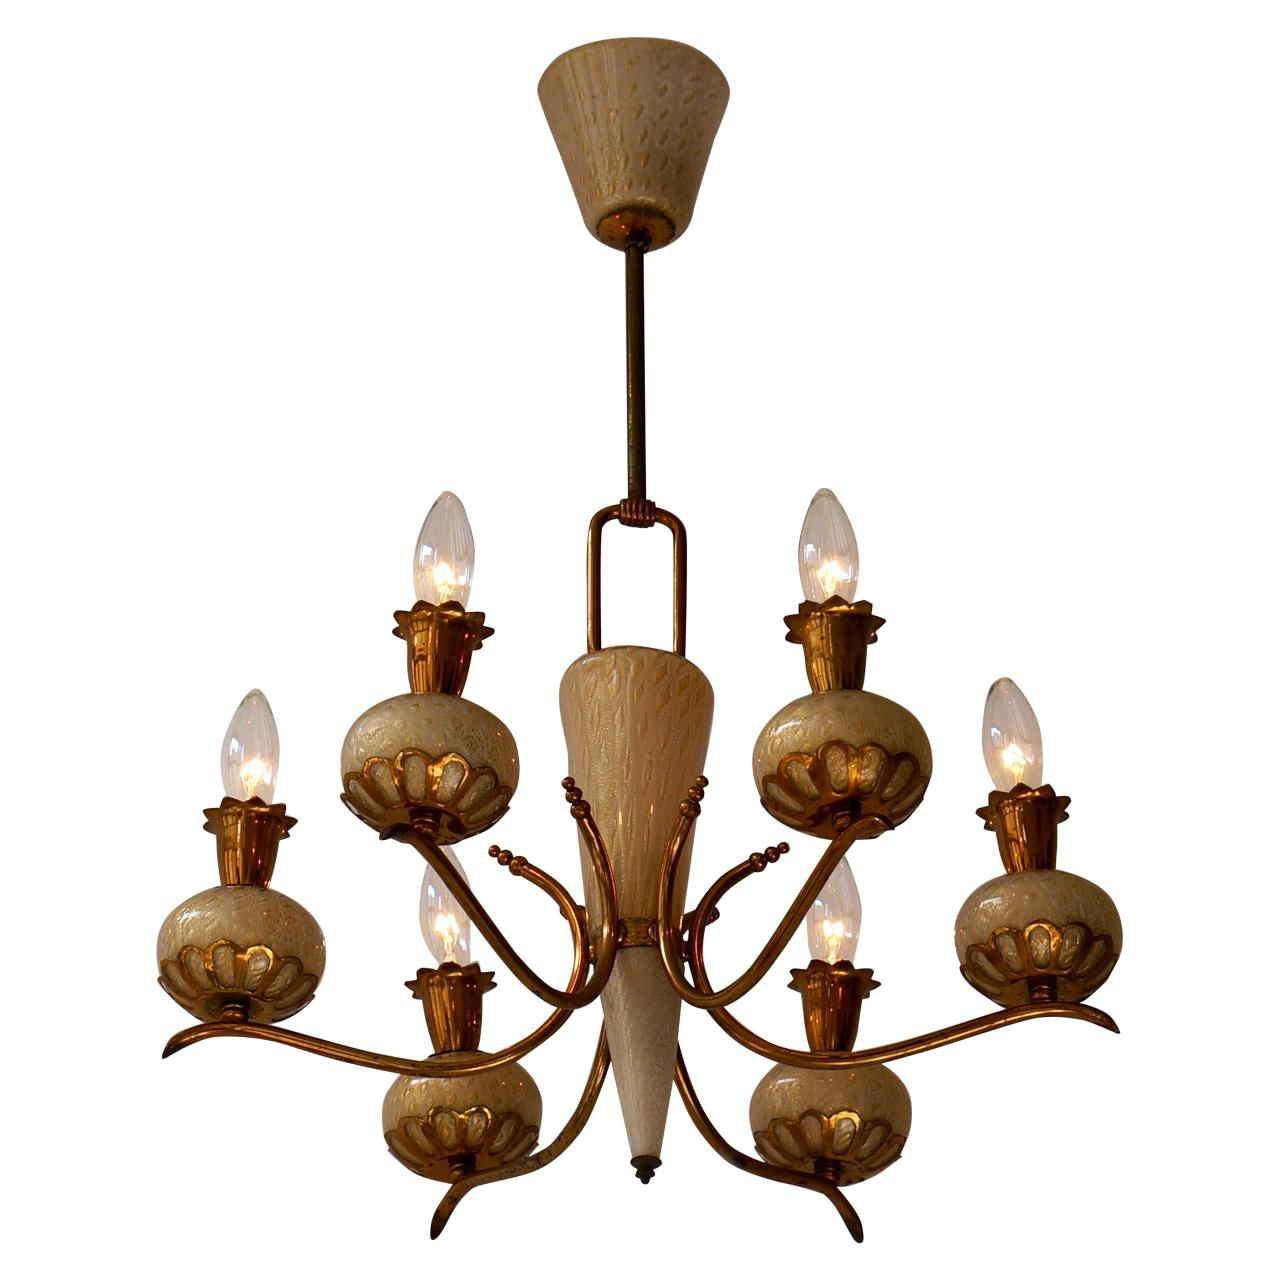 Elegant Italian Murano Gold Glass and Brass Chandelier by Barovier & Torso